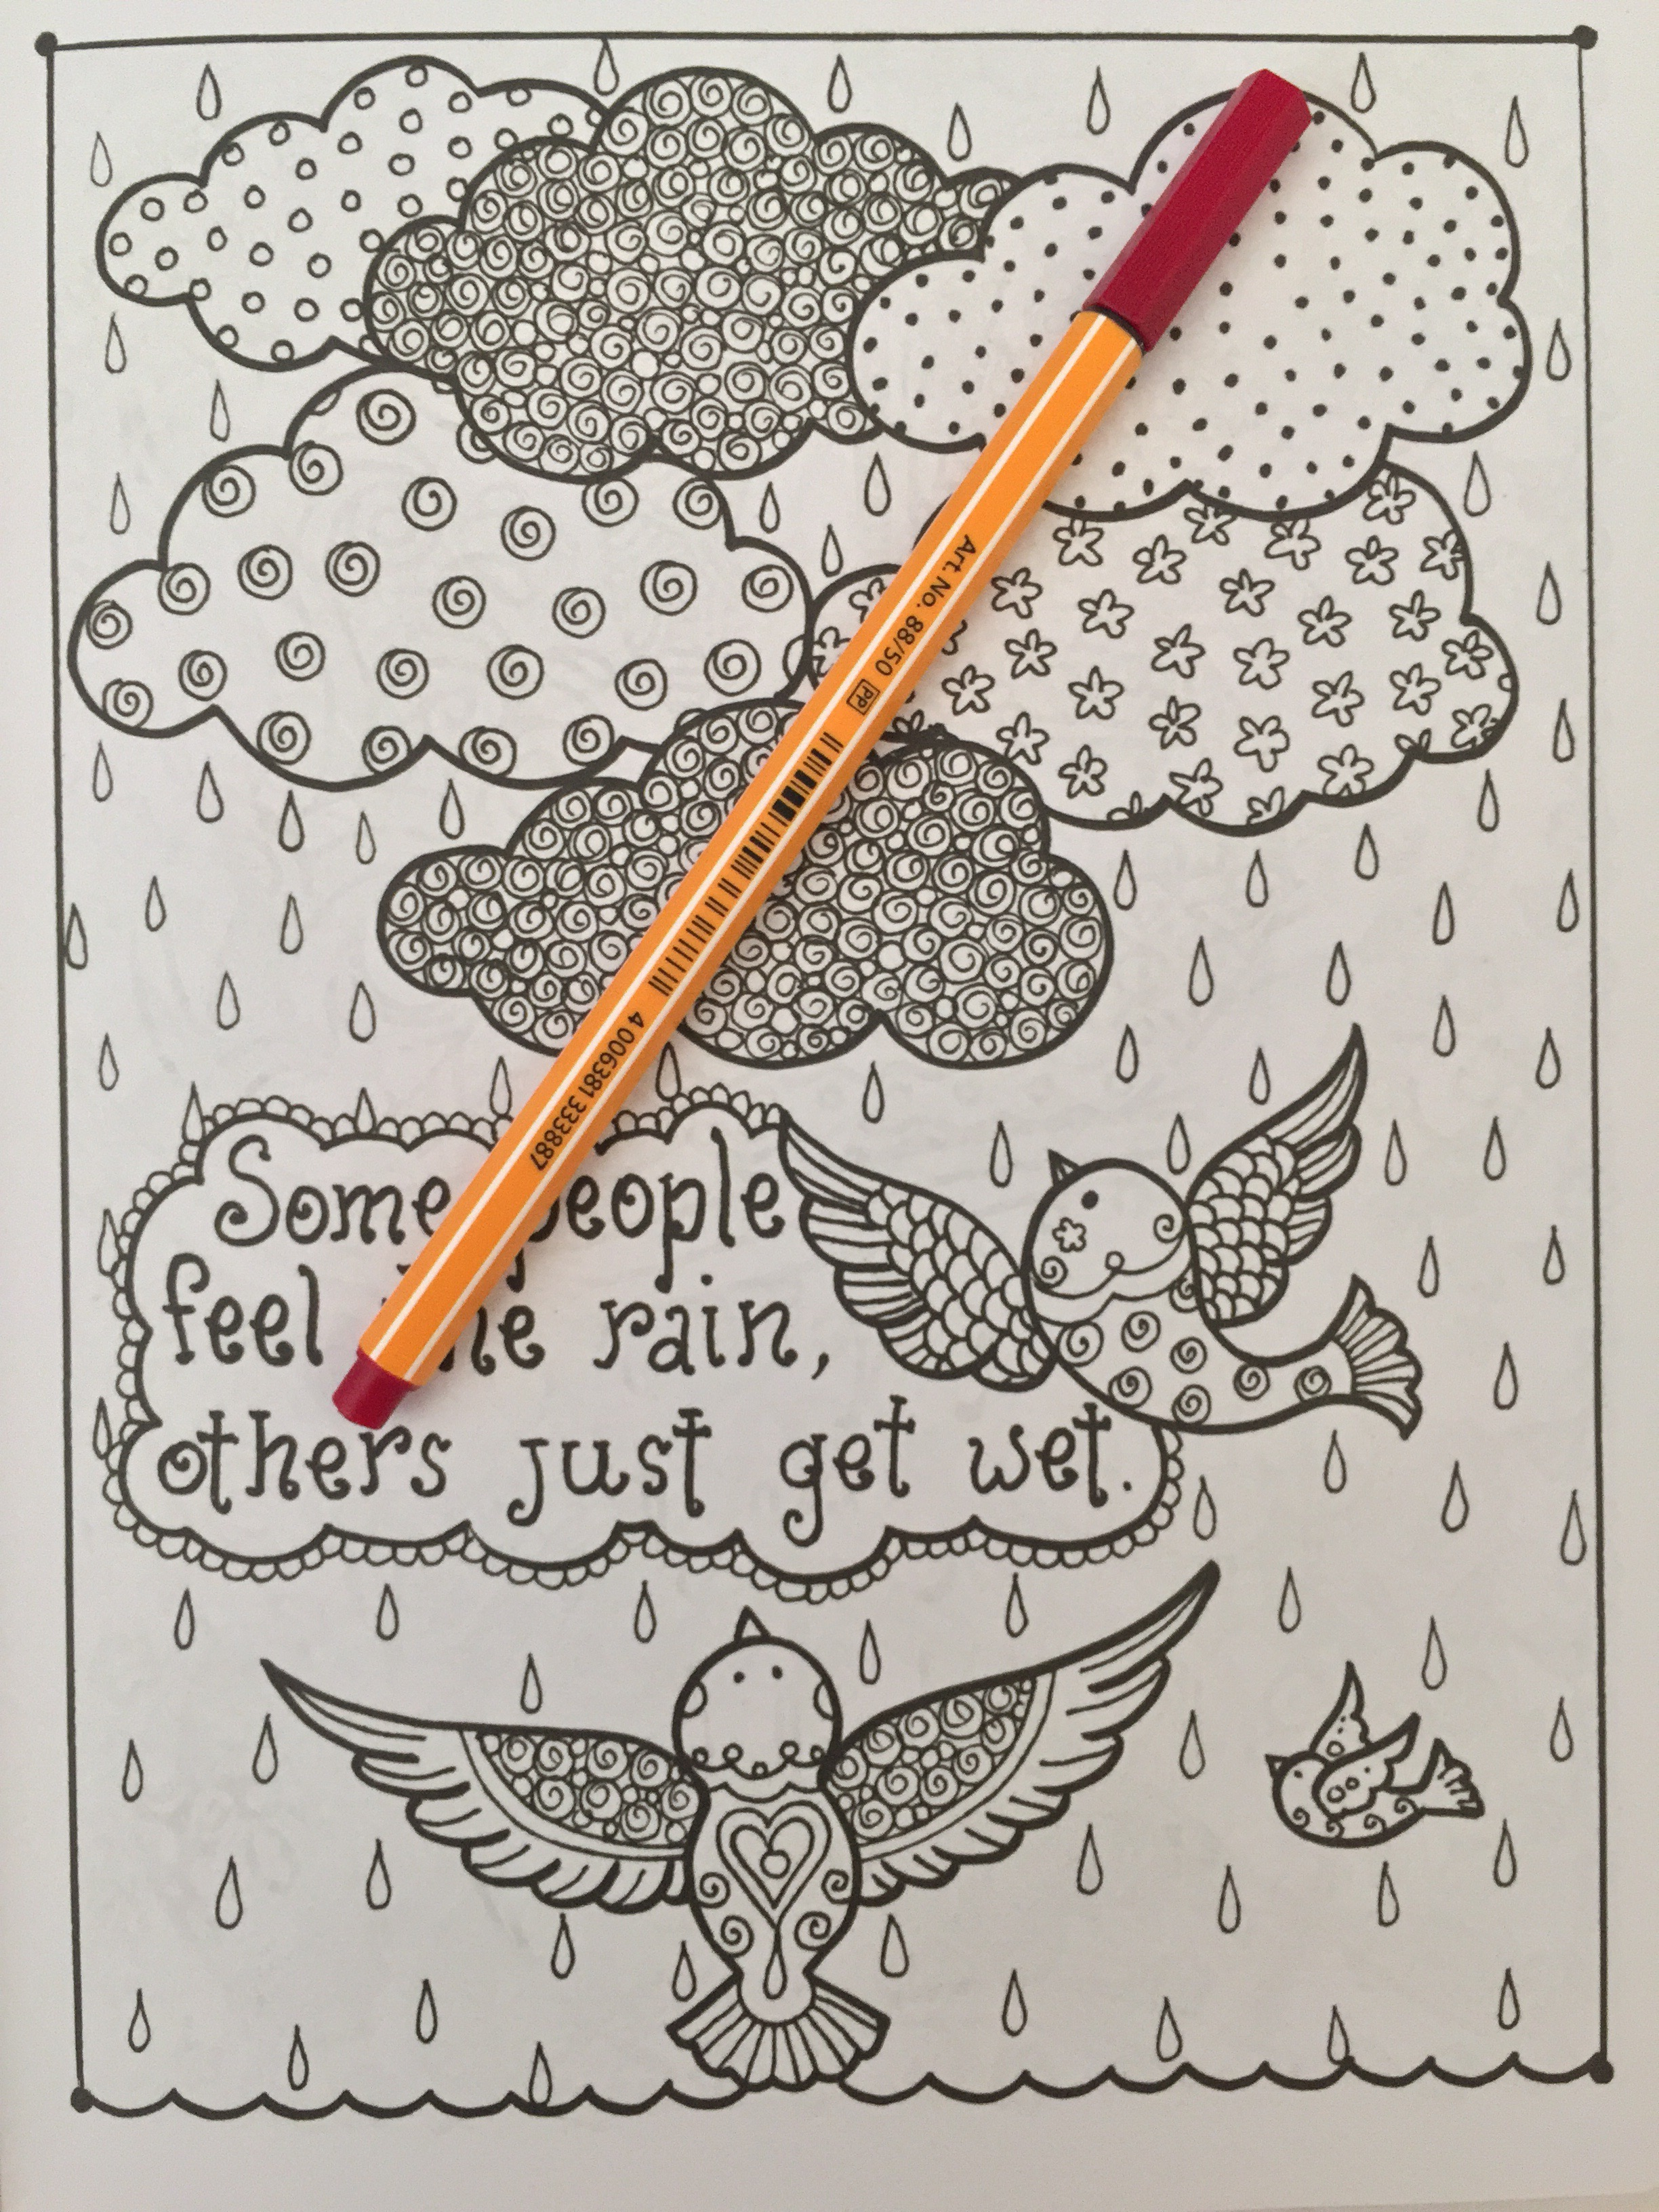 Colouring pencils for adults reviews - Coloring Inspirational Quotes Adult Colouring Therapy Stress Relief Art Therapy Managament Colour Color Pencils Reviews Books